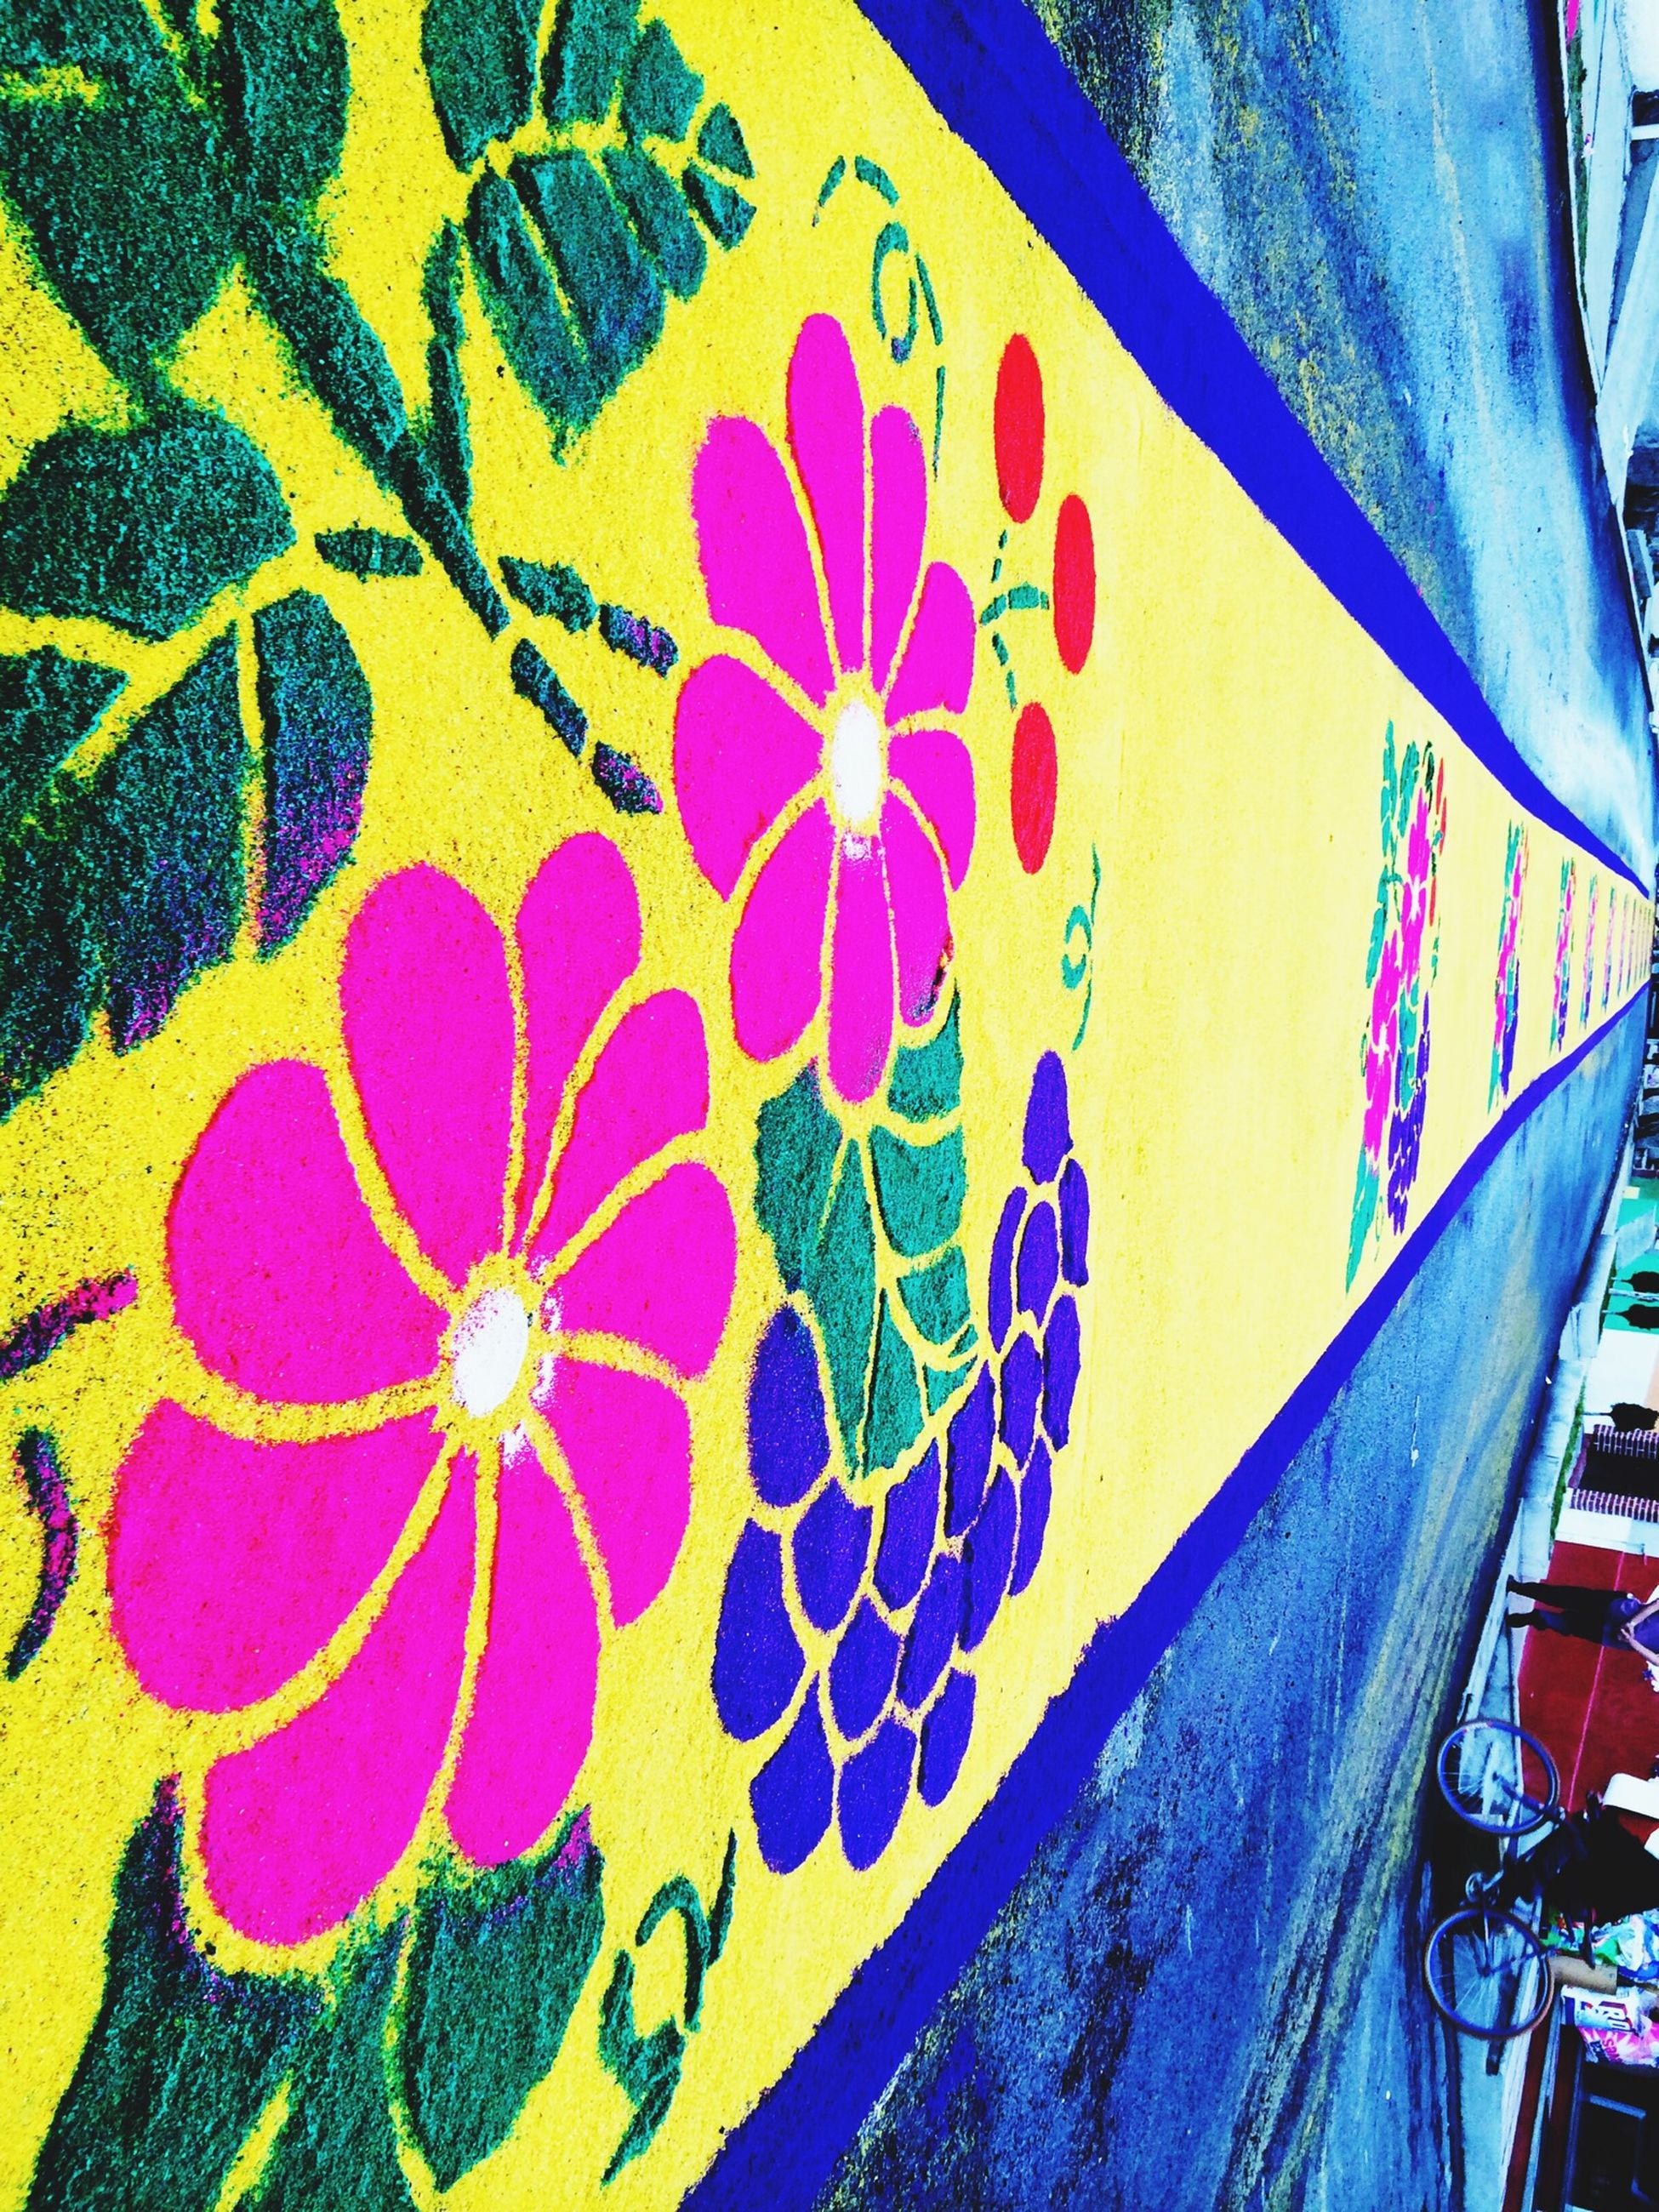 art, creativity, art and craft, indoors, multi colored, design, pattern, floral pattern, textile, graffiti, fabric, wall - building feature, full frame, high angle view, backgrounds, blue, close-up, textured, no people, craft